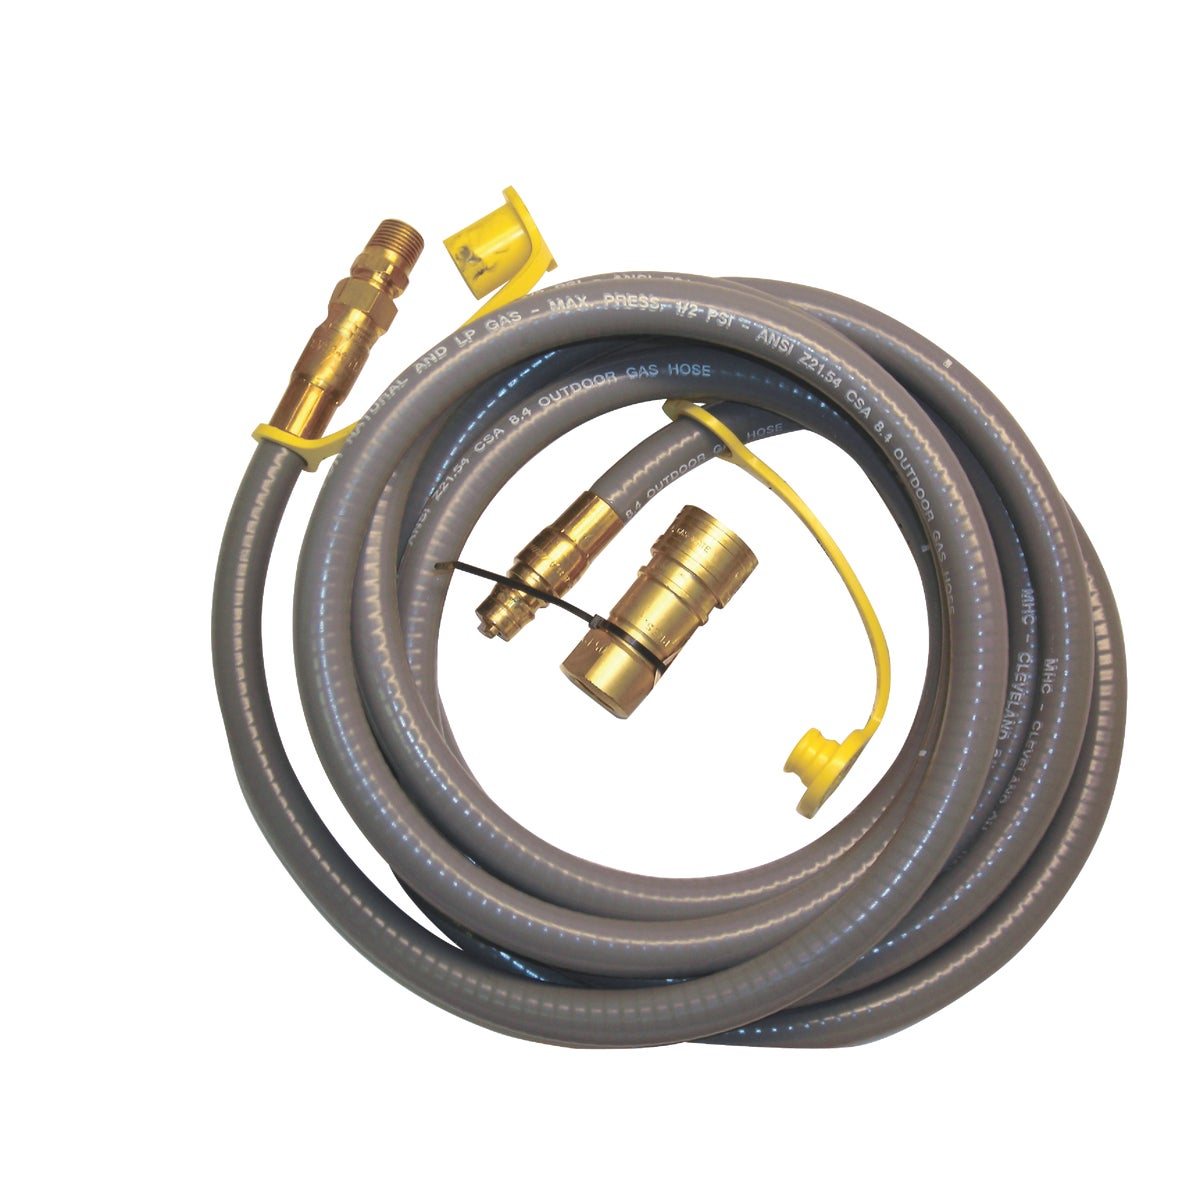 12' NG PATIO HOSE - F273720 by Mr Heater Corp